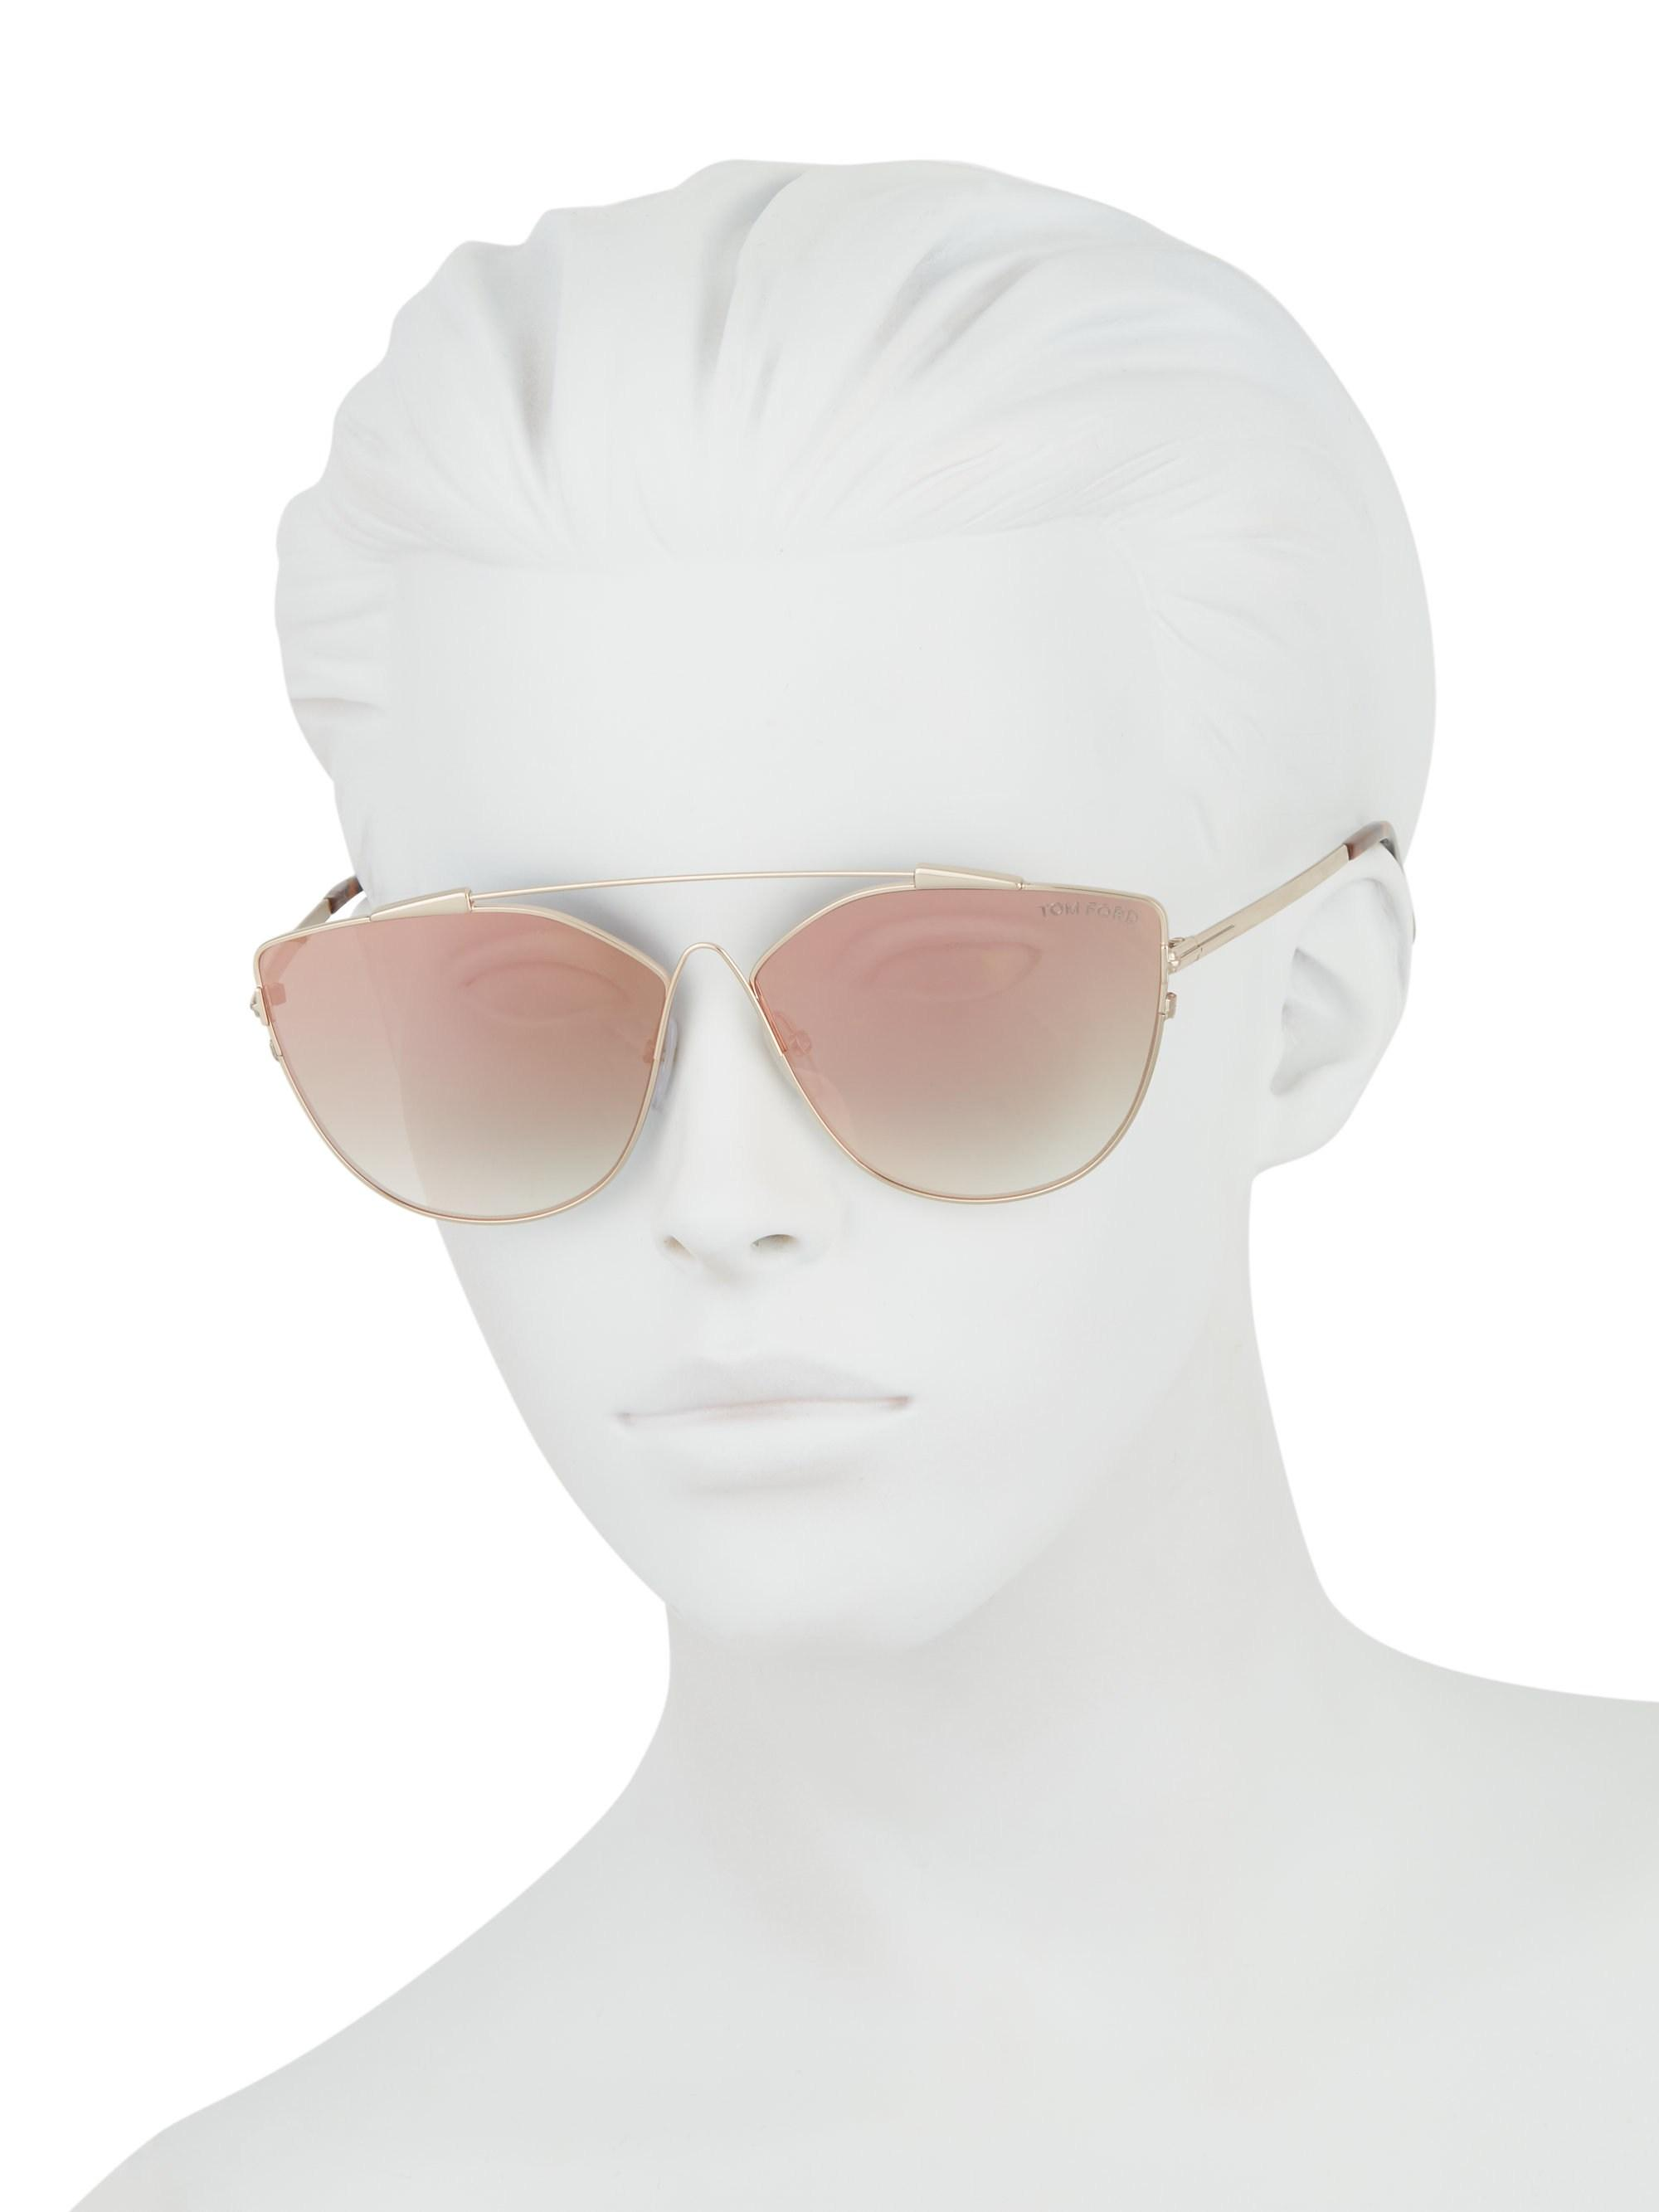 d0681ff3e98e Gallery. Previously sold at: Saks Fifth Avenue · Women's Cat Eye Sunglasses  Women's Tom Ford ...